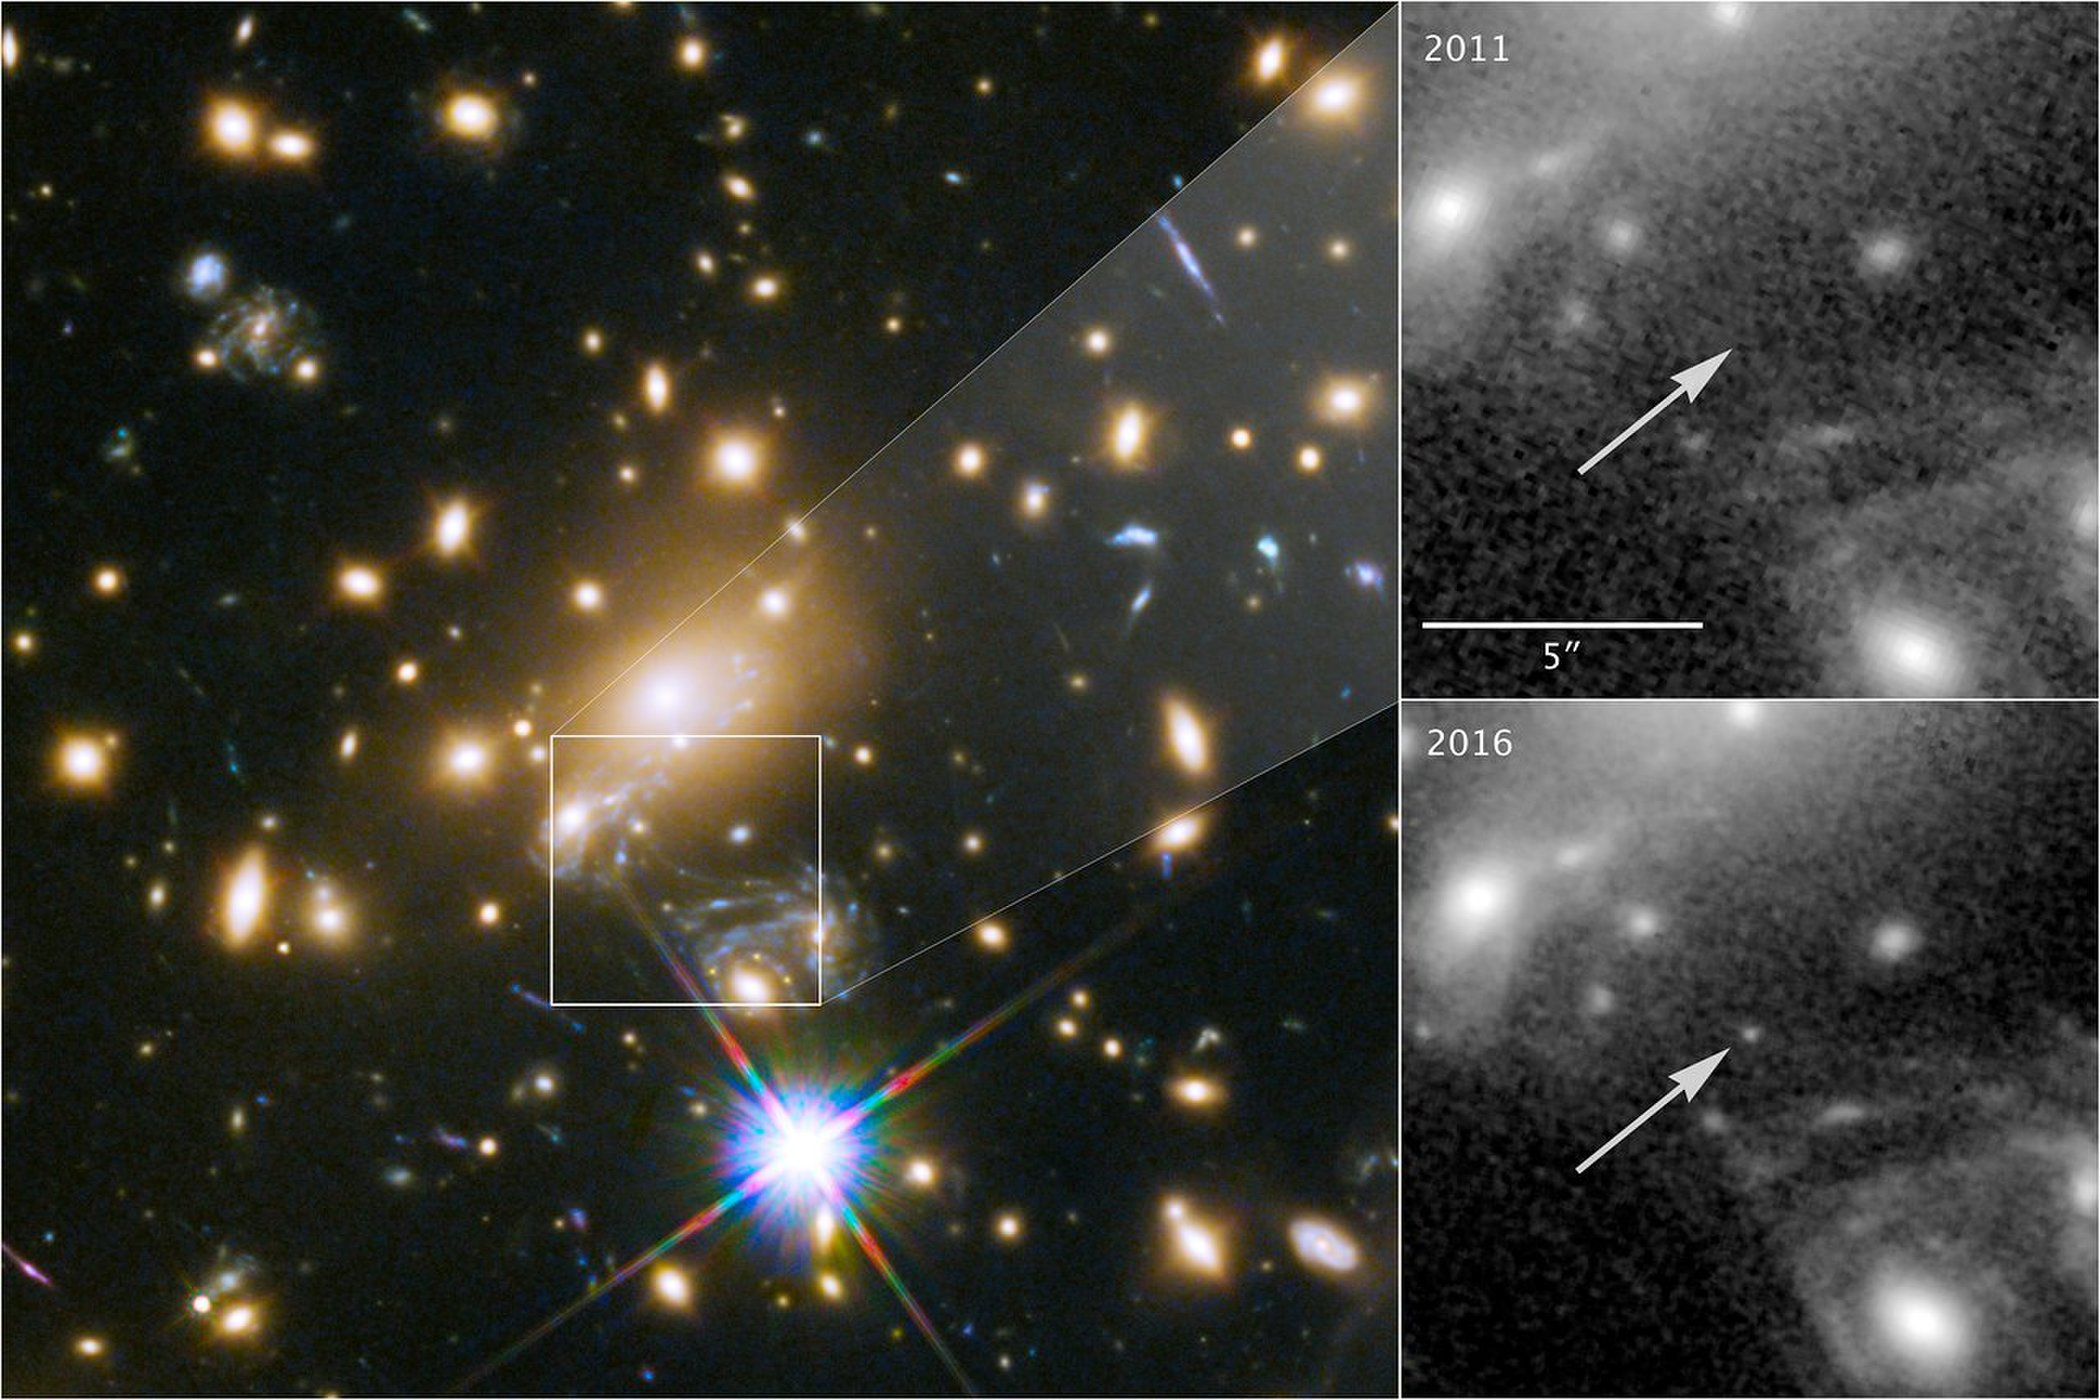 Composite image showing the discovery of the most distant known star, Icarus. Credit: NASA/ESA/P Kelly(University of Minnesota)